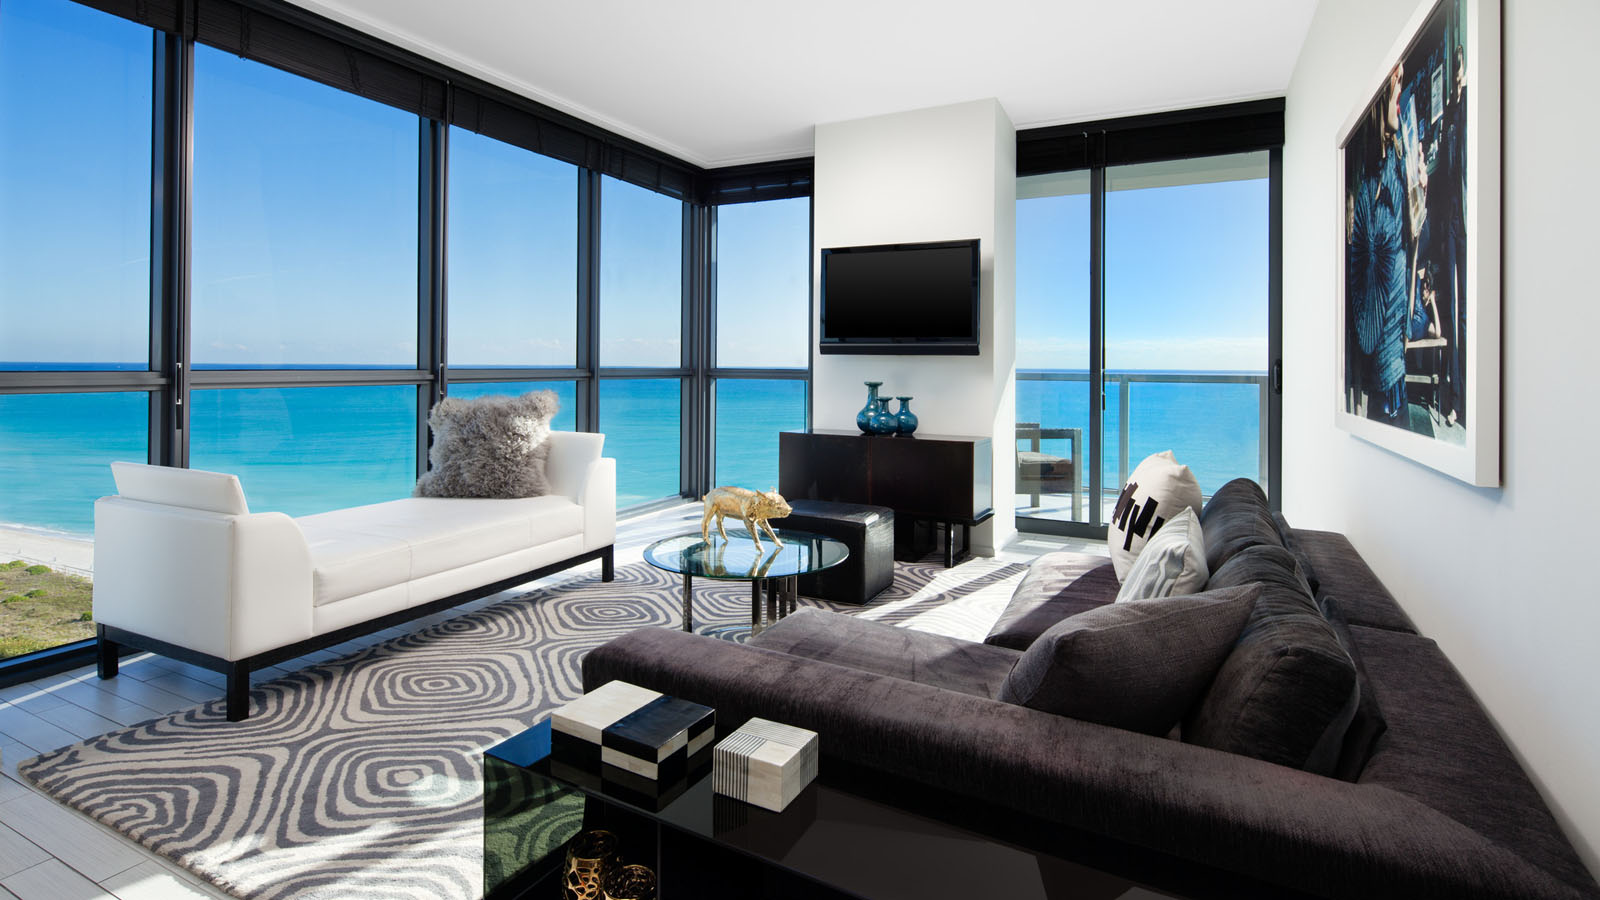 w south beach look no further for your miami getaway